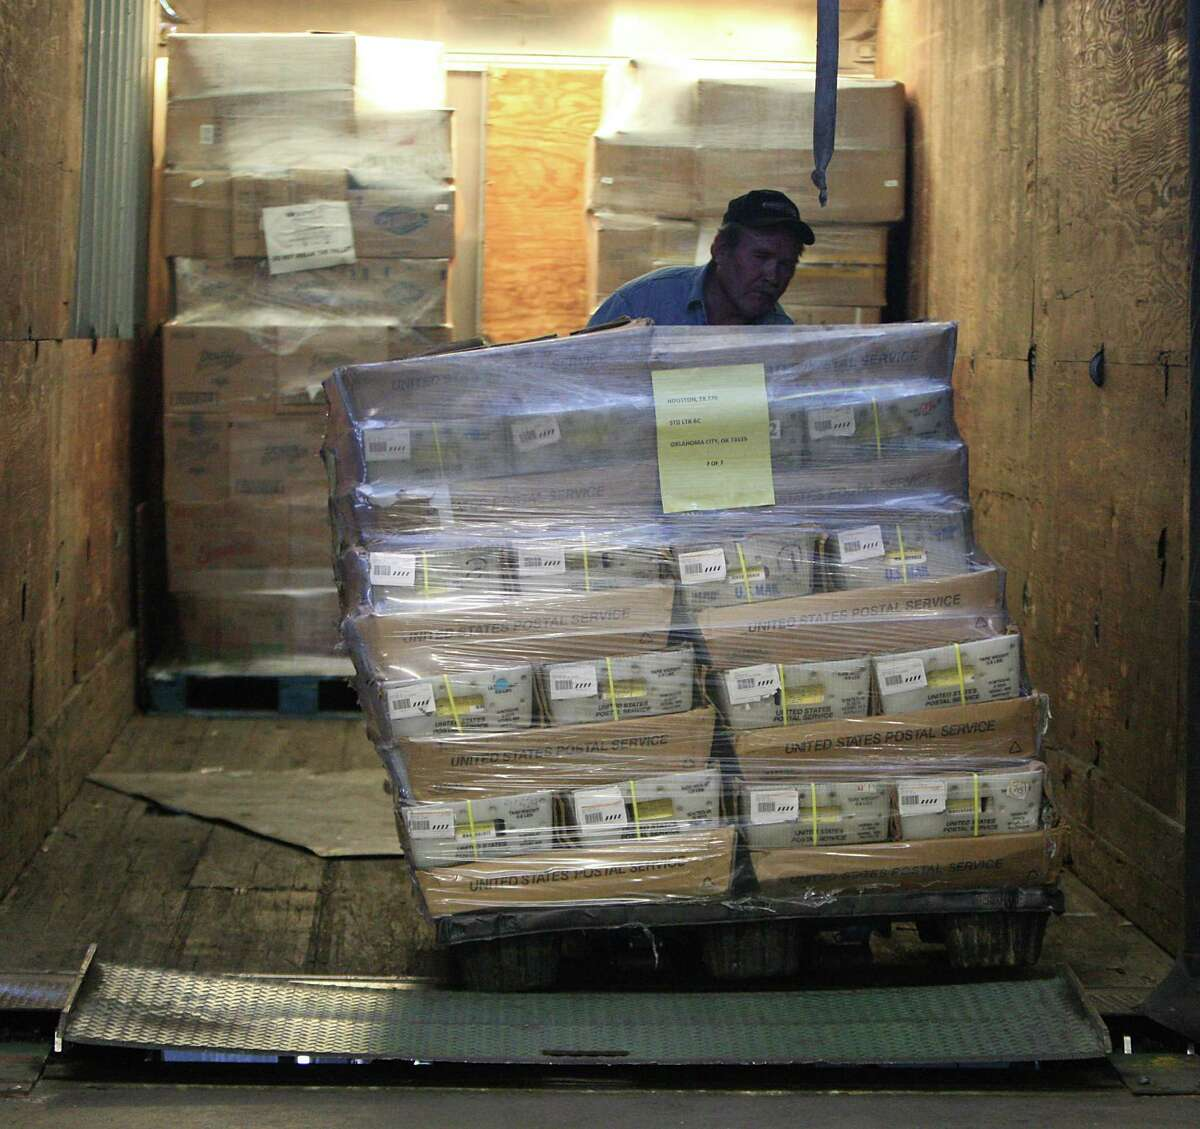 Truck driver Jim Dodson unloads some of the 6,255 pounds of Harris County voter registration cards that are ready to ship Tuesday at the downtown post office.